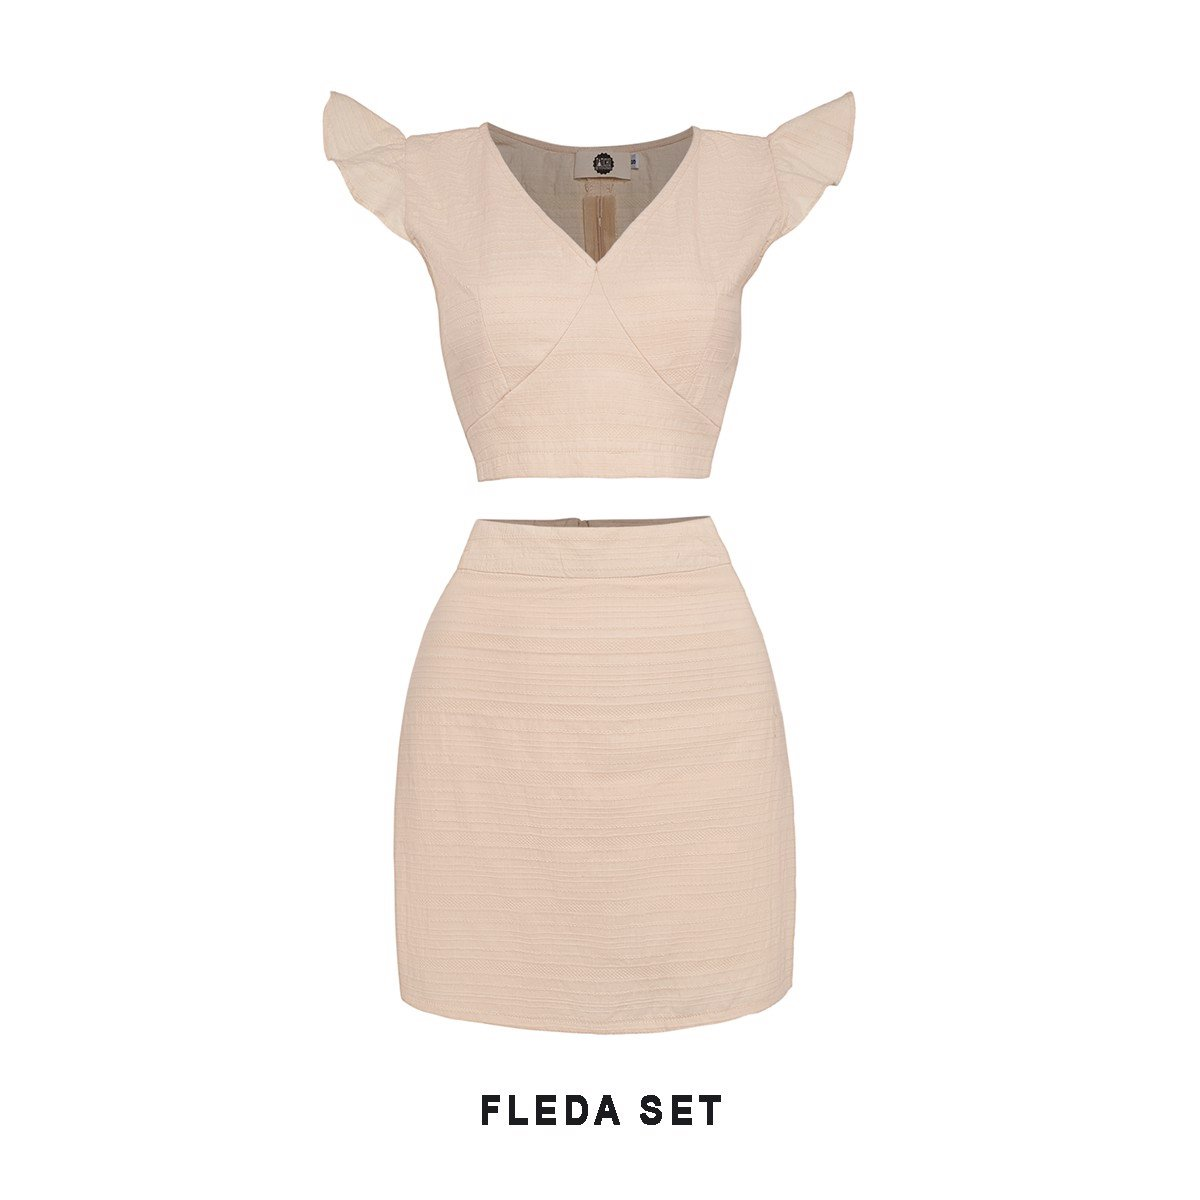 Fleda top set (Áo)